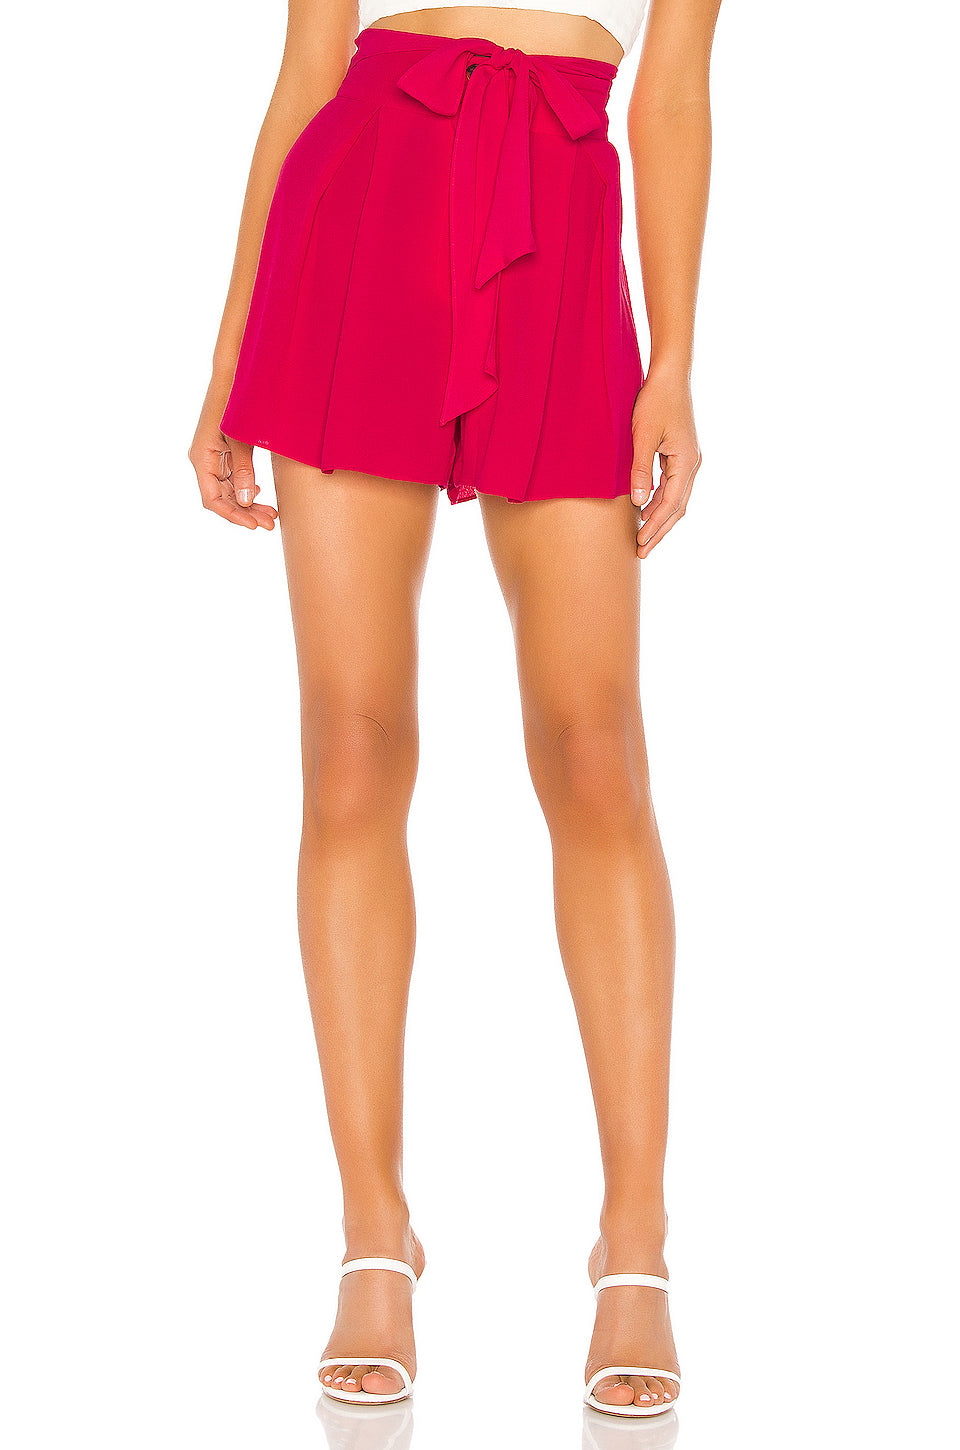 JOA Pleated Shorts With Waist Tie BC8650